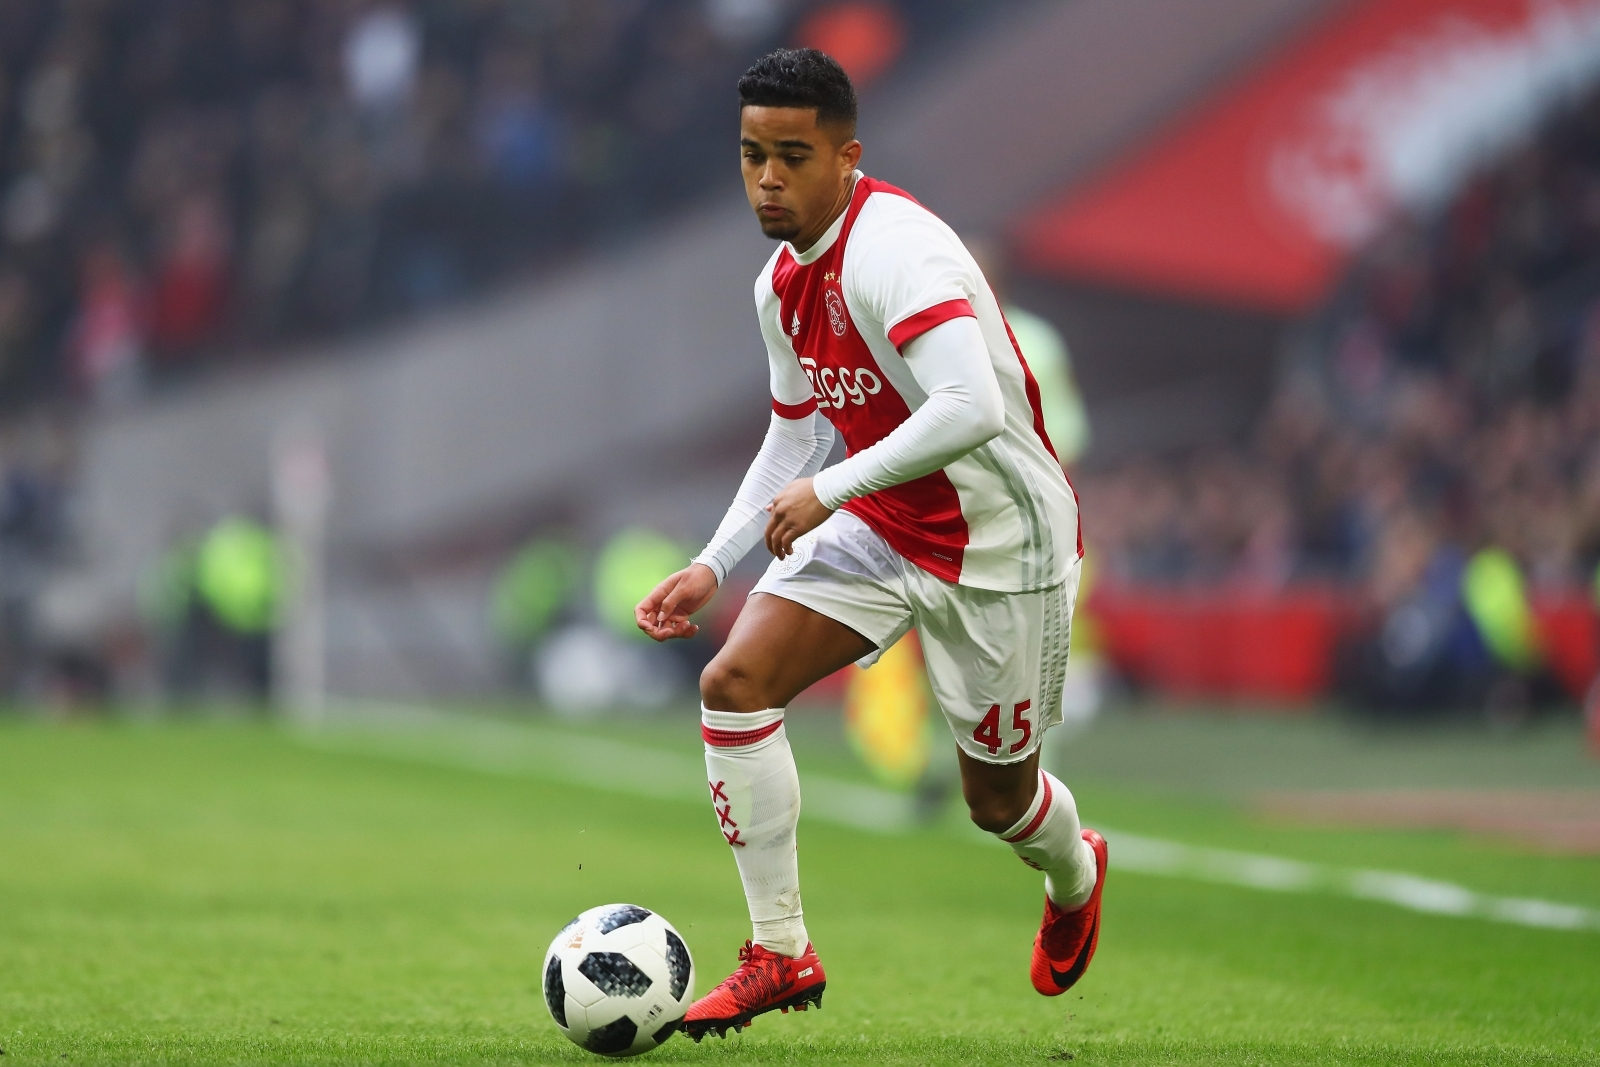 Manchester United In Advanced Talks To Sign 18-Year-Old Justin Kluivert